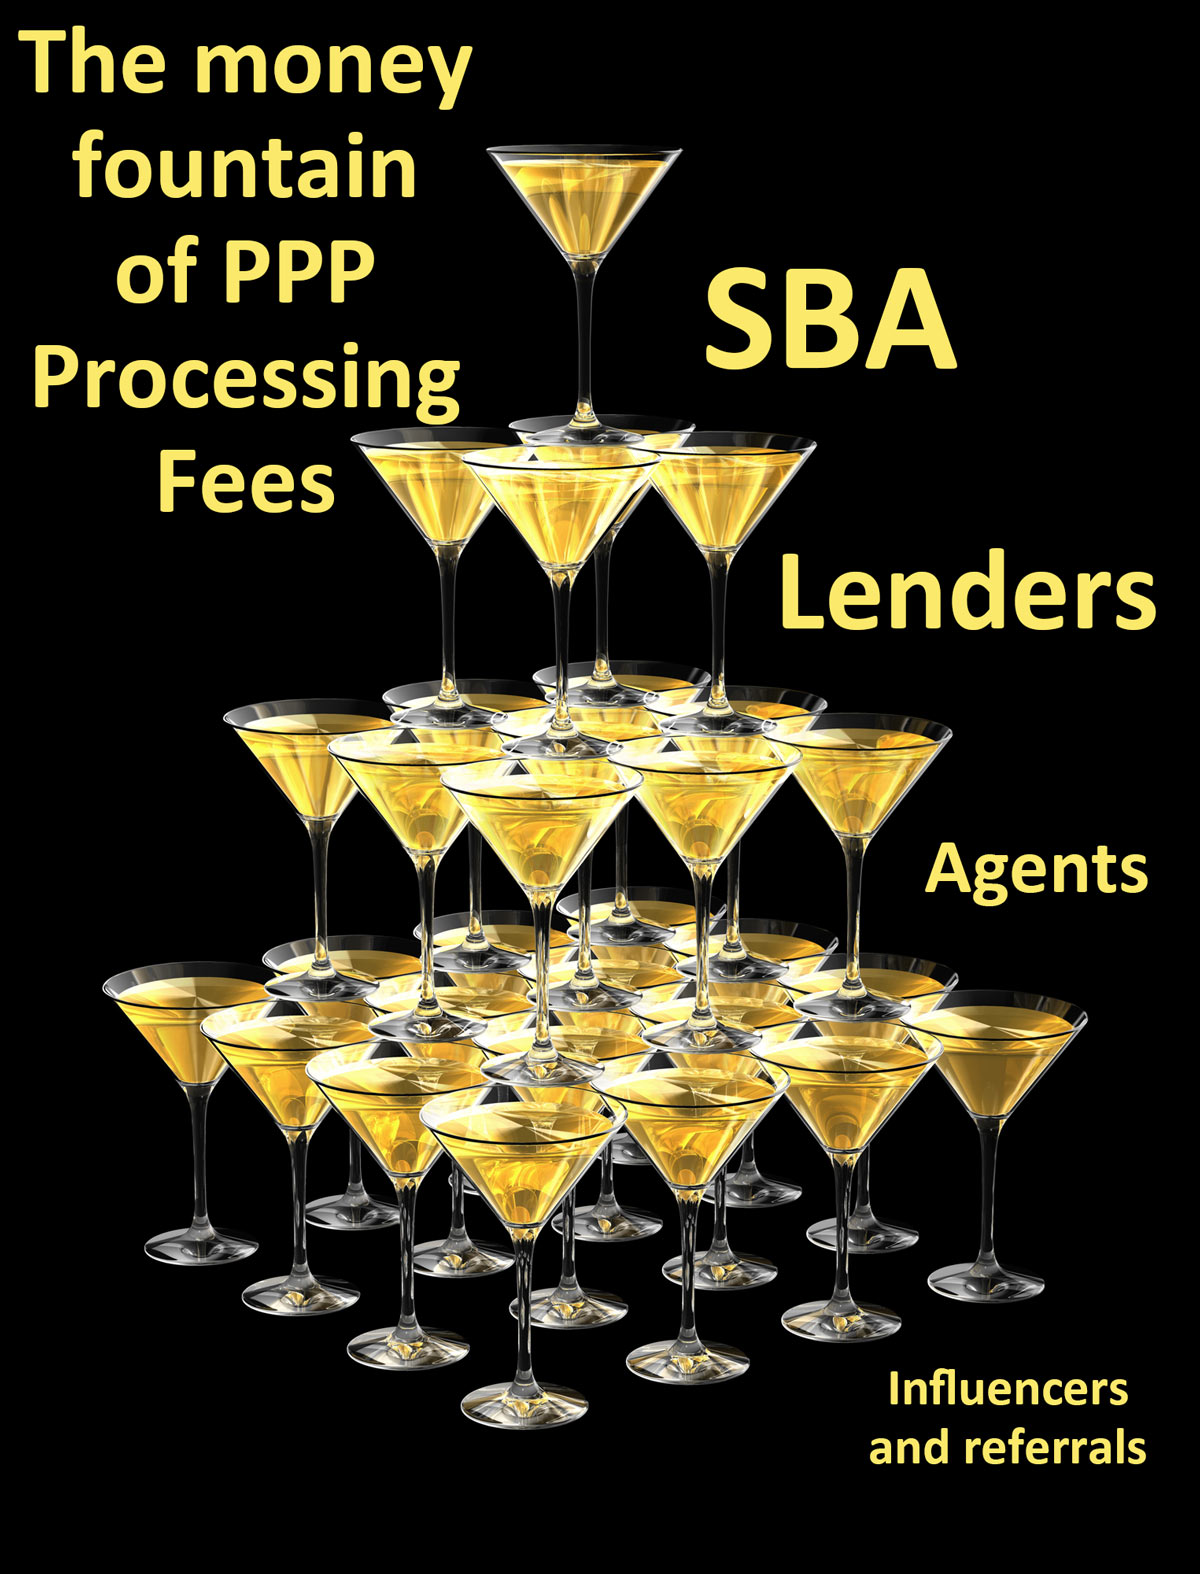 A champagne glass pyramid illustrating the trickle down of PPP Processing fees. The top layer is labeled SBA, second layer labeled Lenders, third layer labeled Agents, and bottom layer labeled influencers and referrals.